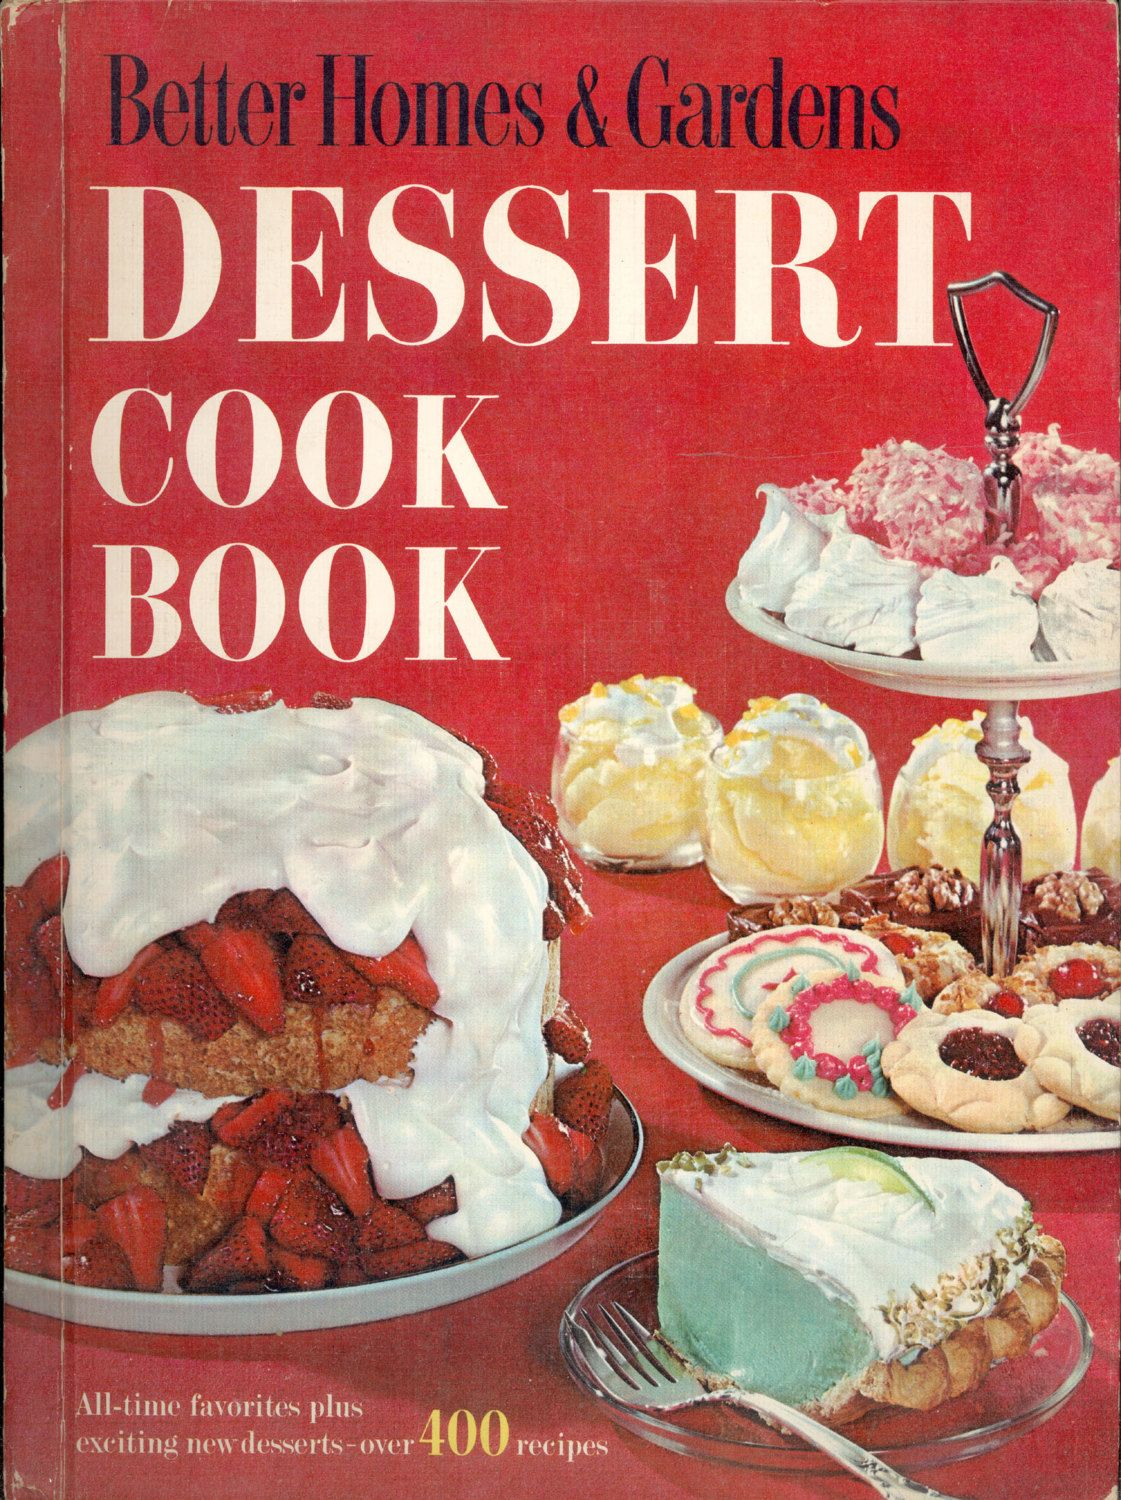 better homes and gardens cookbook. Vintage Cookbook Better Homes \u0026 Gardens Dessert Cook Book 1967 Classic Kitchen Recipes CrabbyCats And